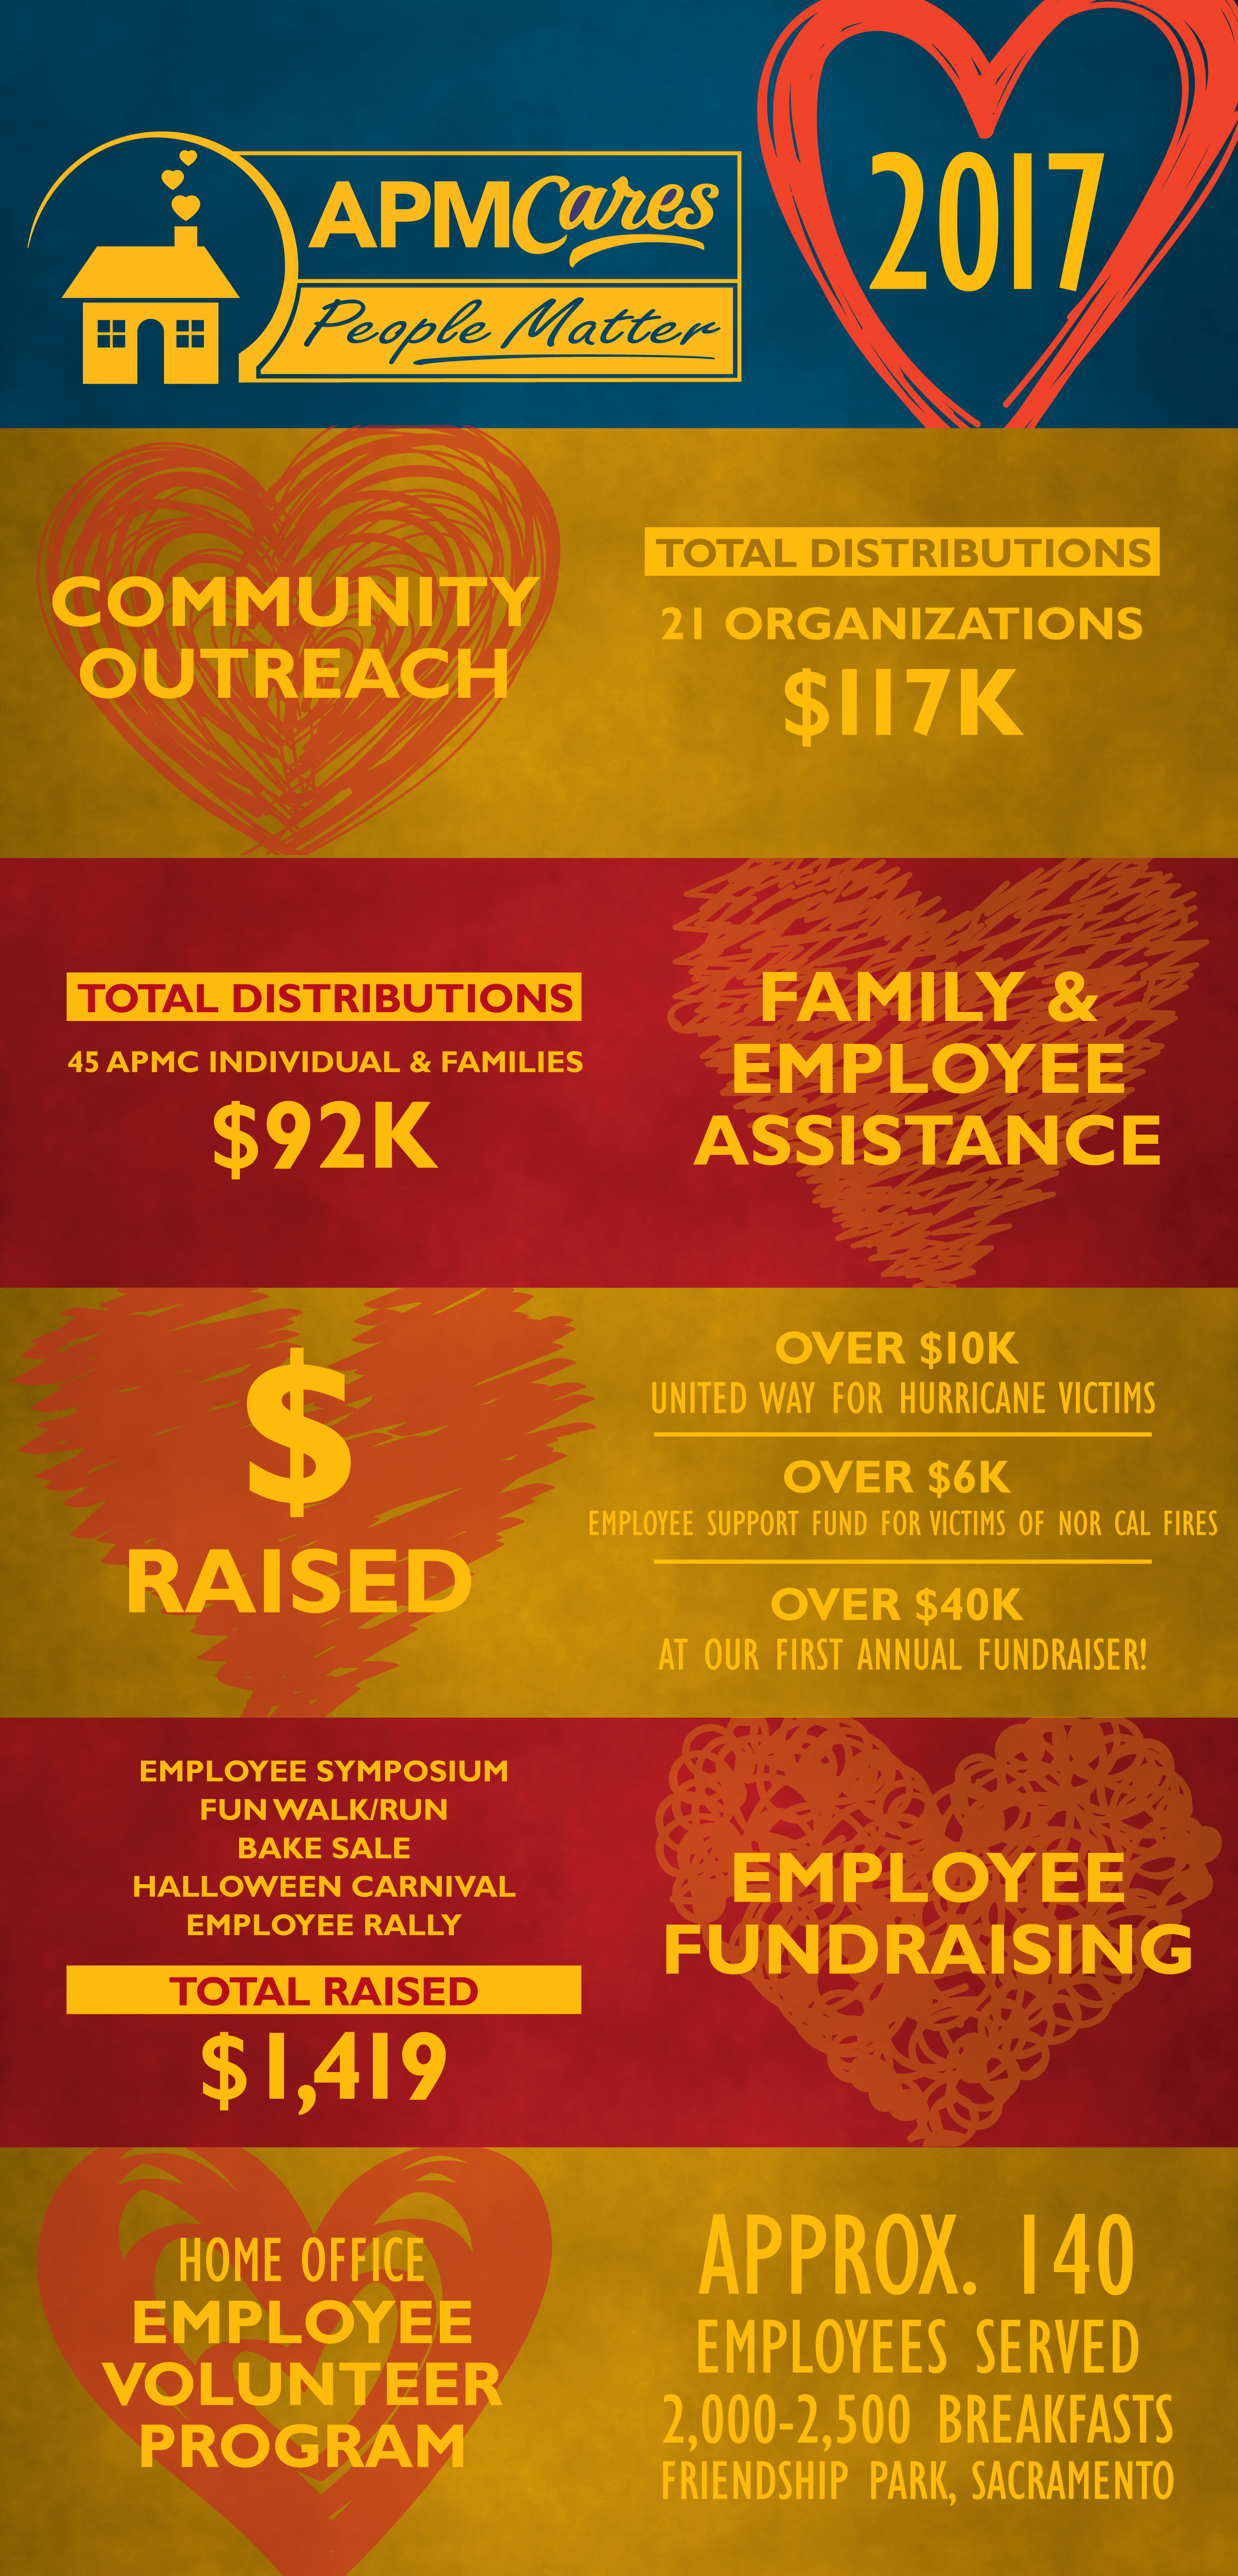 APMCares Stats Infographic